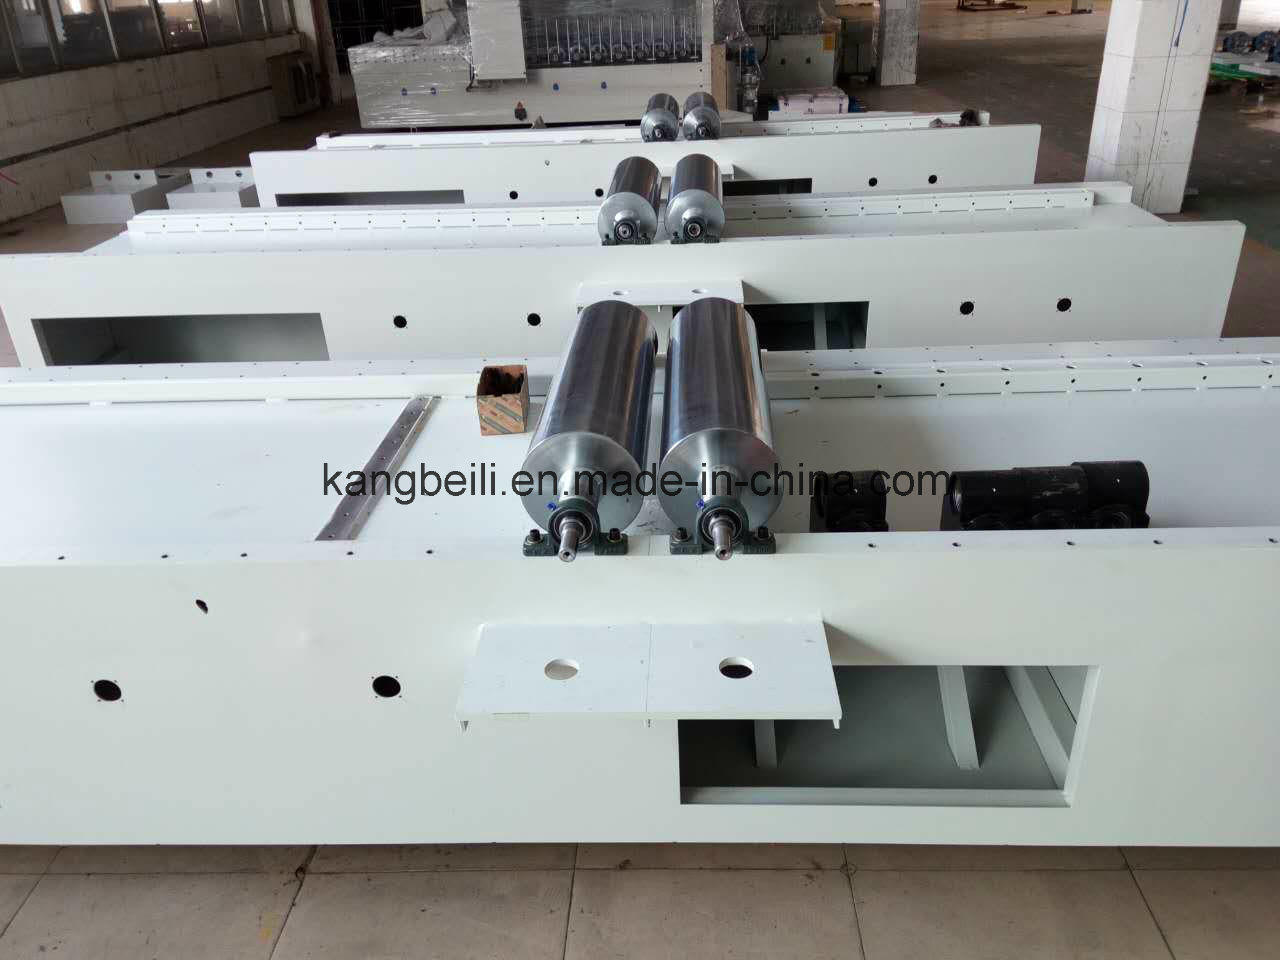 PVC Cold Adhesive Furniture Decorative TUV Certificated Mingde Brand Woodworking Wrapping Machine